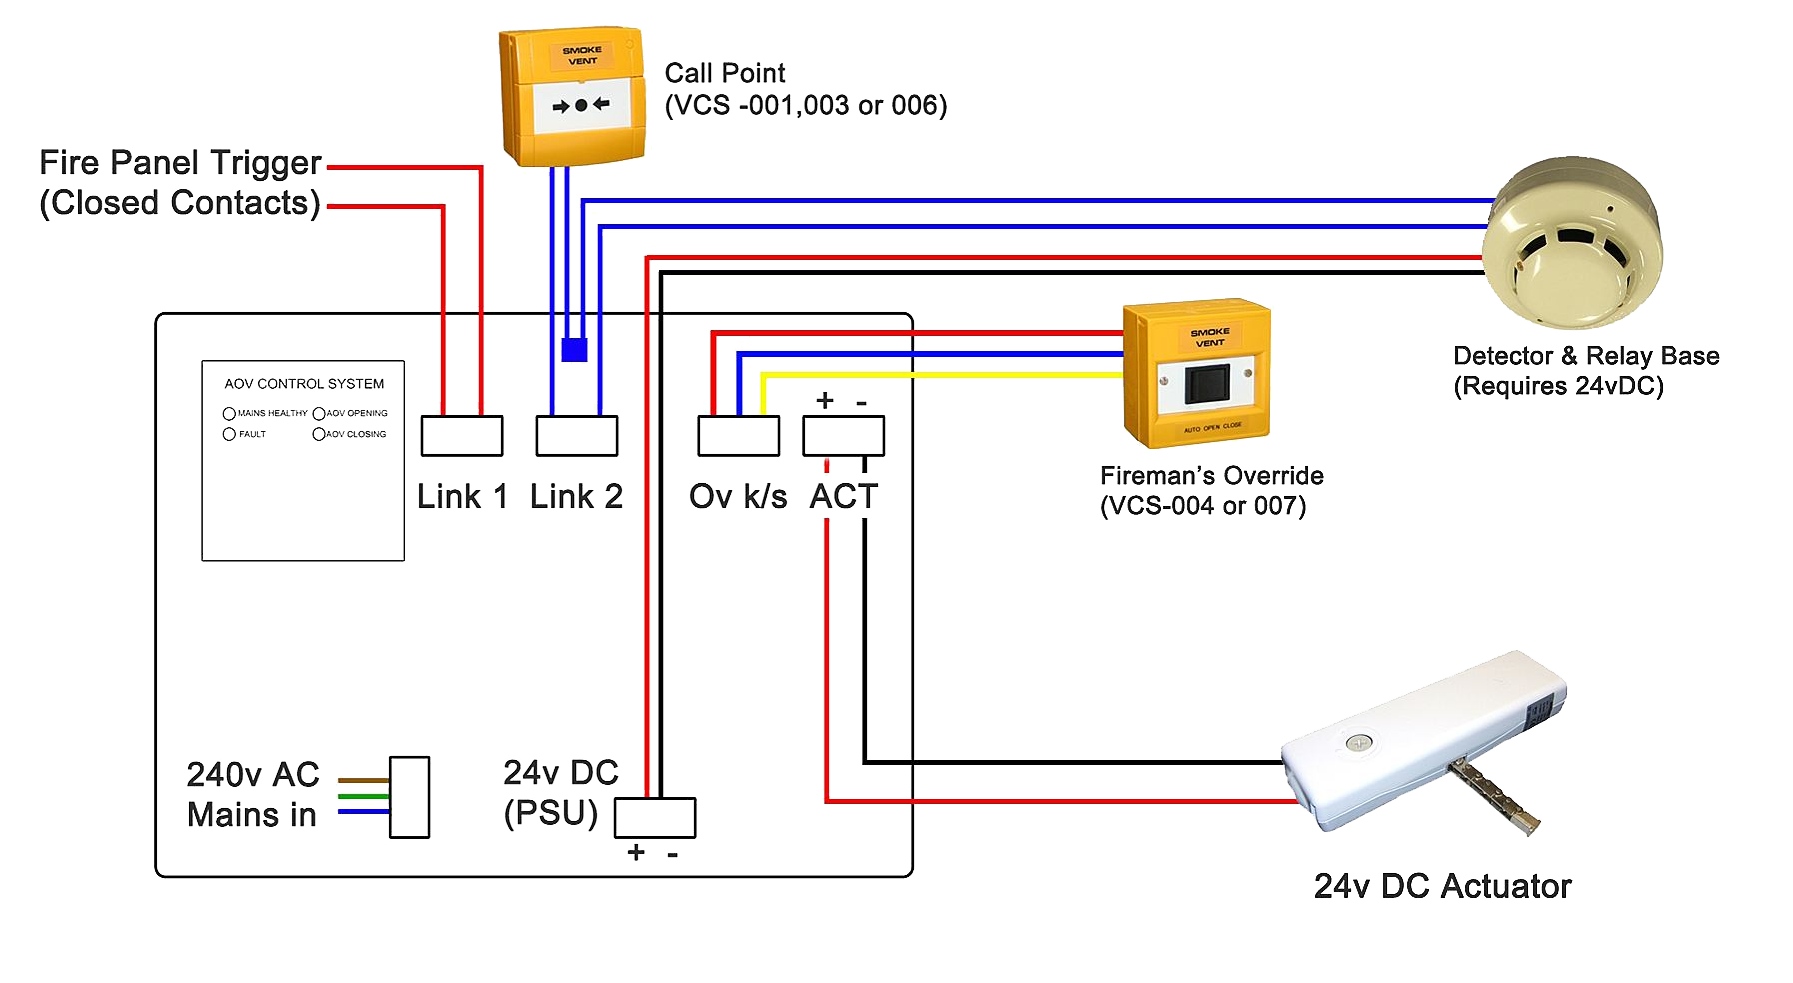 Single Zone AOV Layout Wiring wiring diagram gcs20r schematic circuit diagram \u2022 wiring diagram  at fashall.co